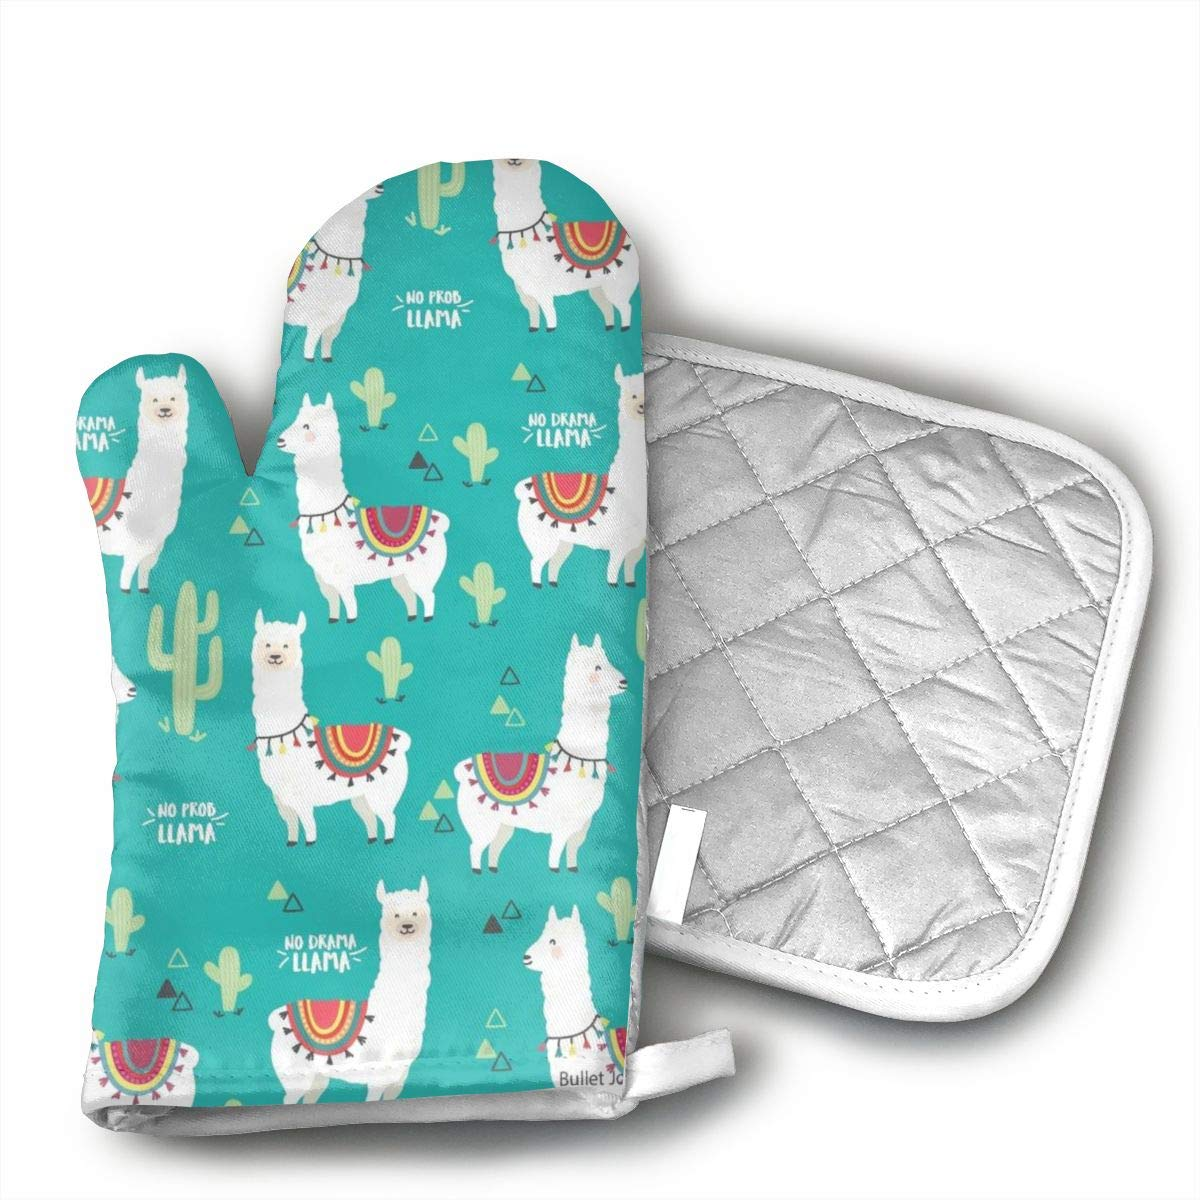 Cute White Llama Alpaca Cactus Oven Mitts and Pot Holders Kitchen Mitten Cooking Gloves,Cooking, Baking, BBQ.